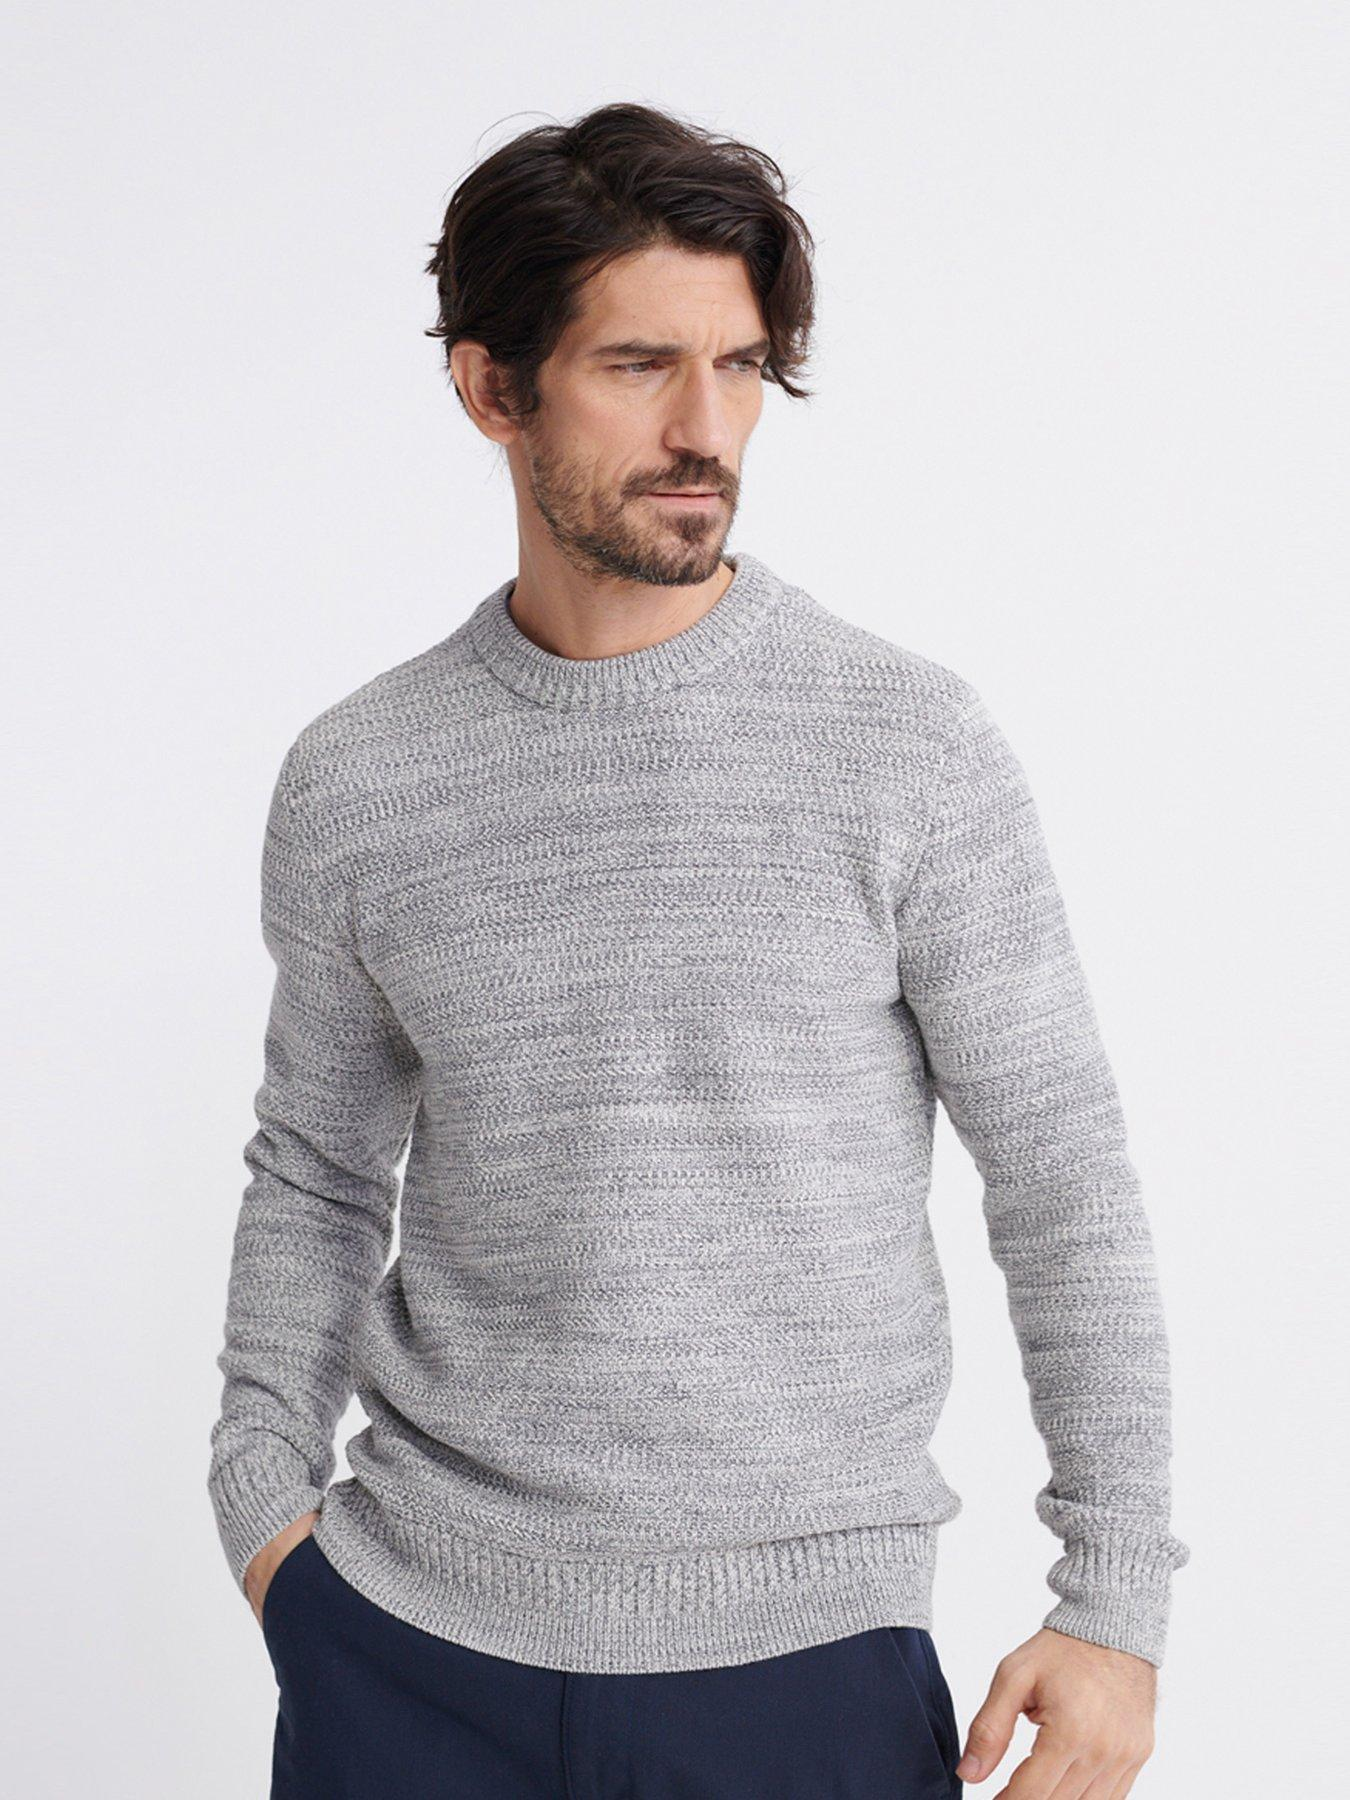 Mens Round Neck Knitted Two Tone Blue Navy Jumper Top Regular Fit